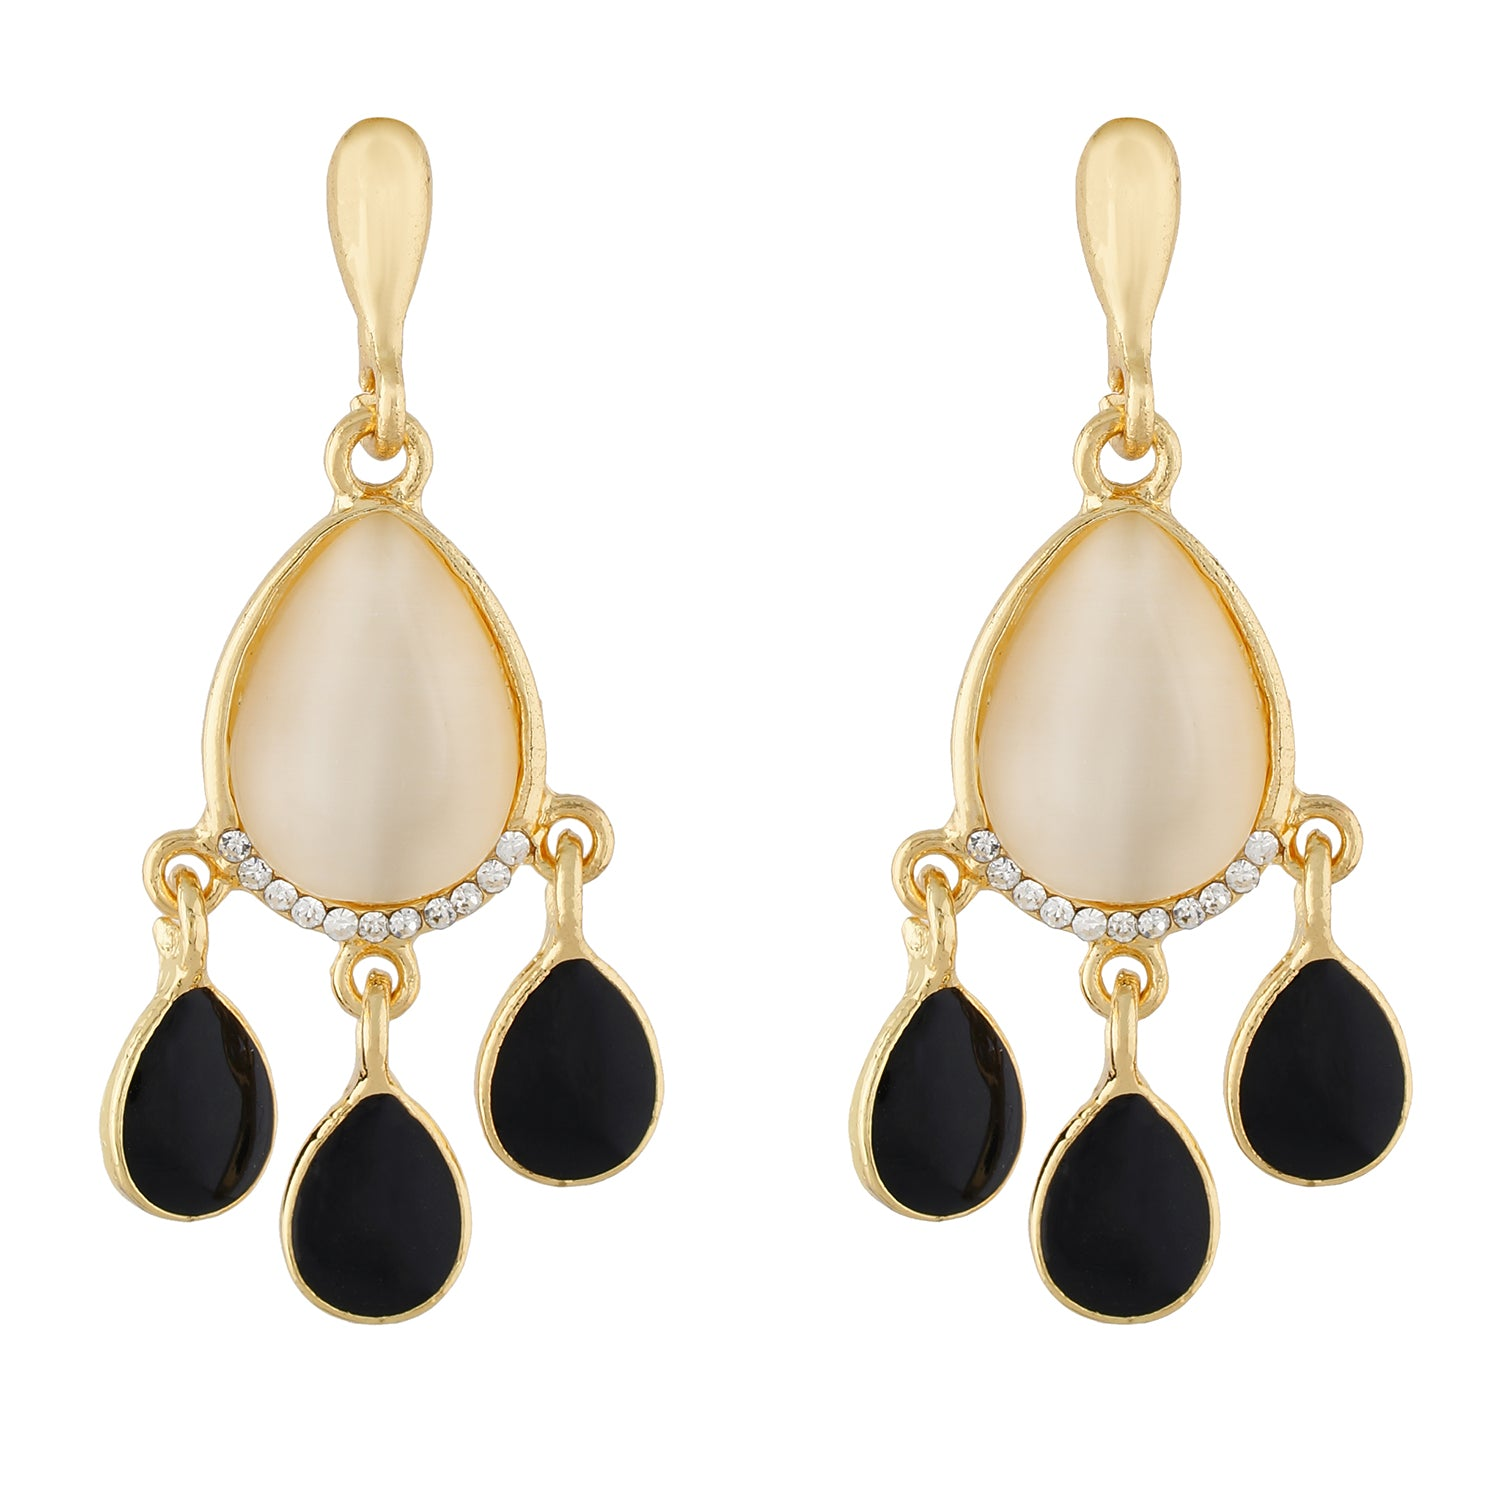 Fashionable Black and Gold Colour Drop Design Earring for Girls and Women